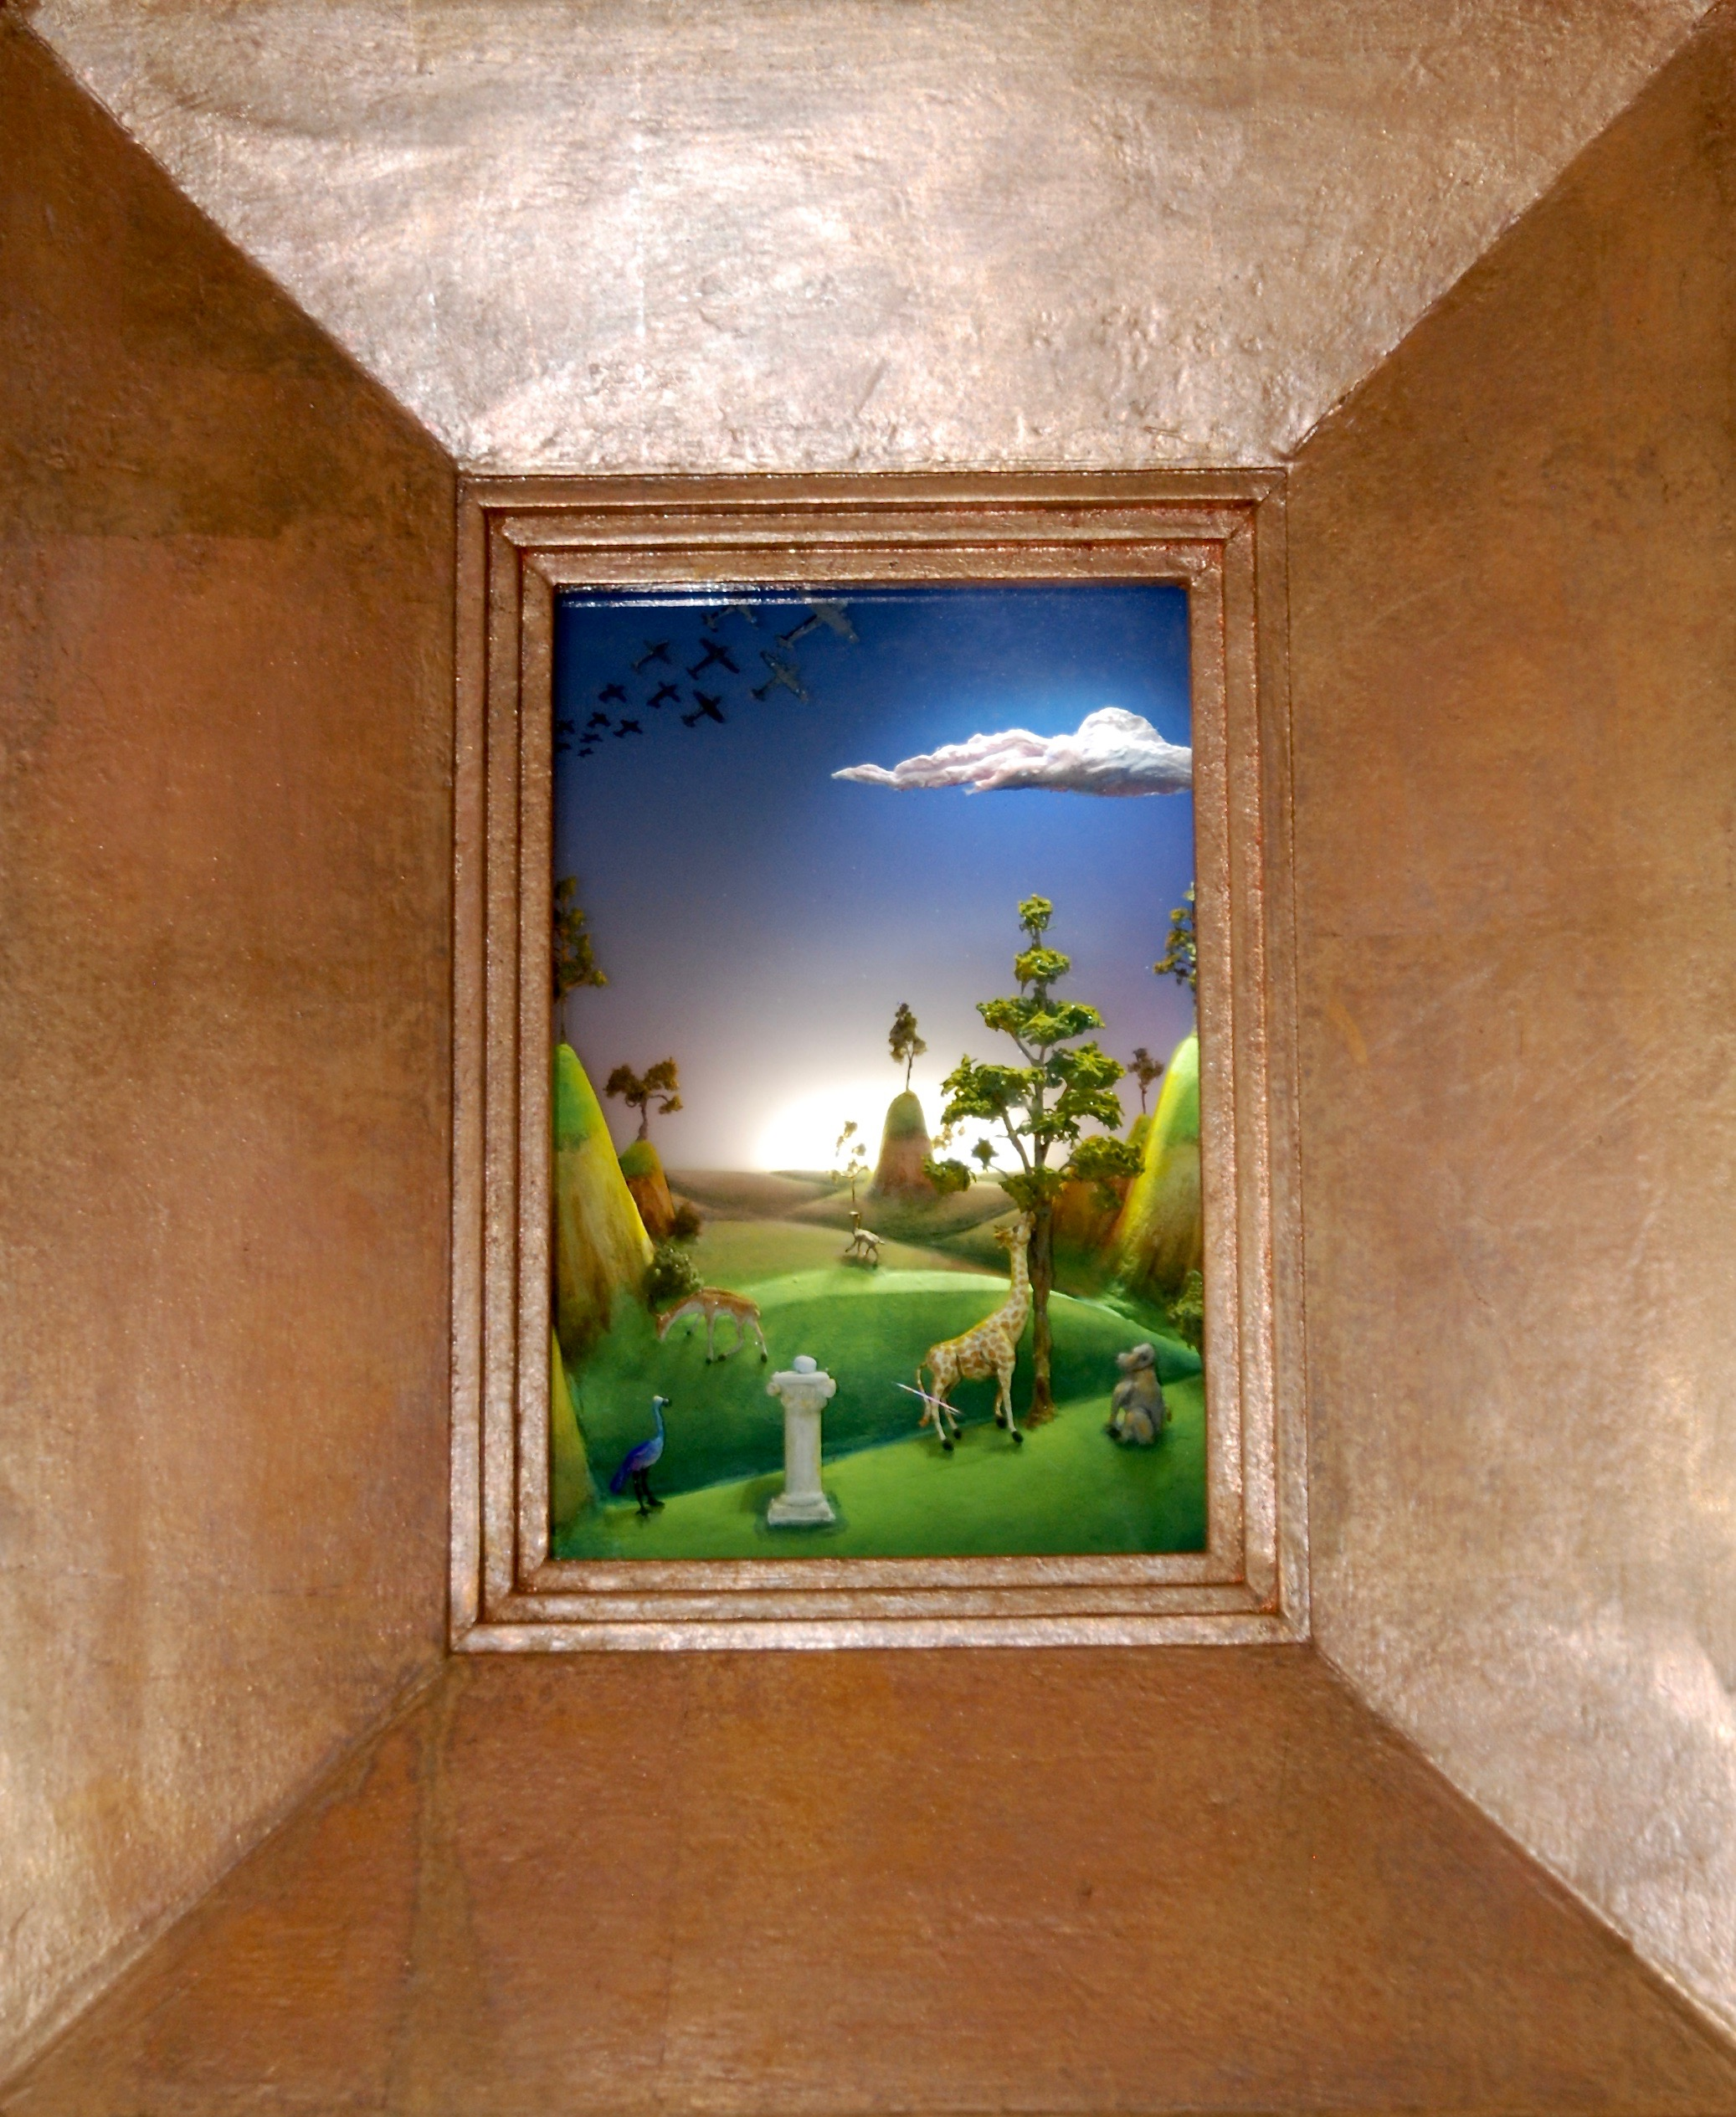 """Thomas Coffin - A Peaceable Kingdom, 20""""h x 16""""w x 5 3/4""""d, mixed media 3-d diorama encased in acrylic resin, wood frame, copper leaf"""